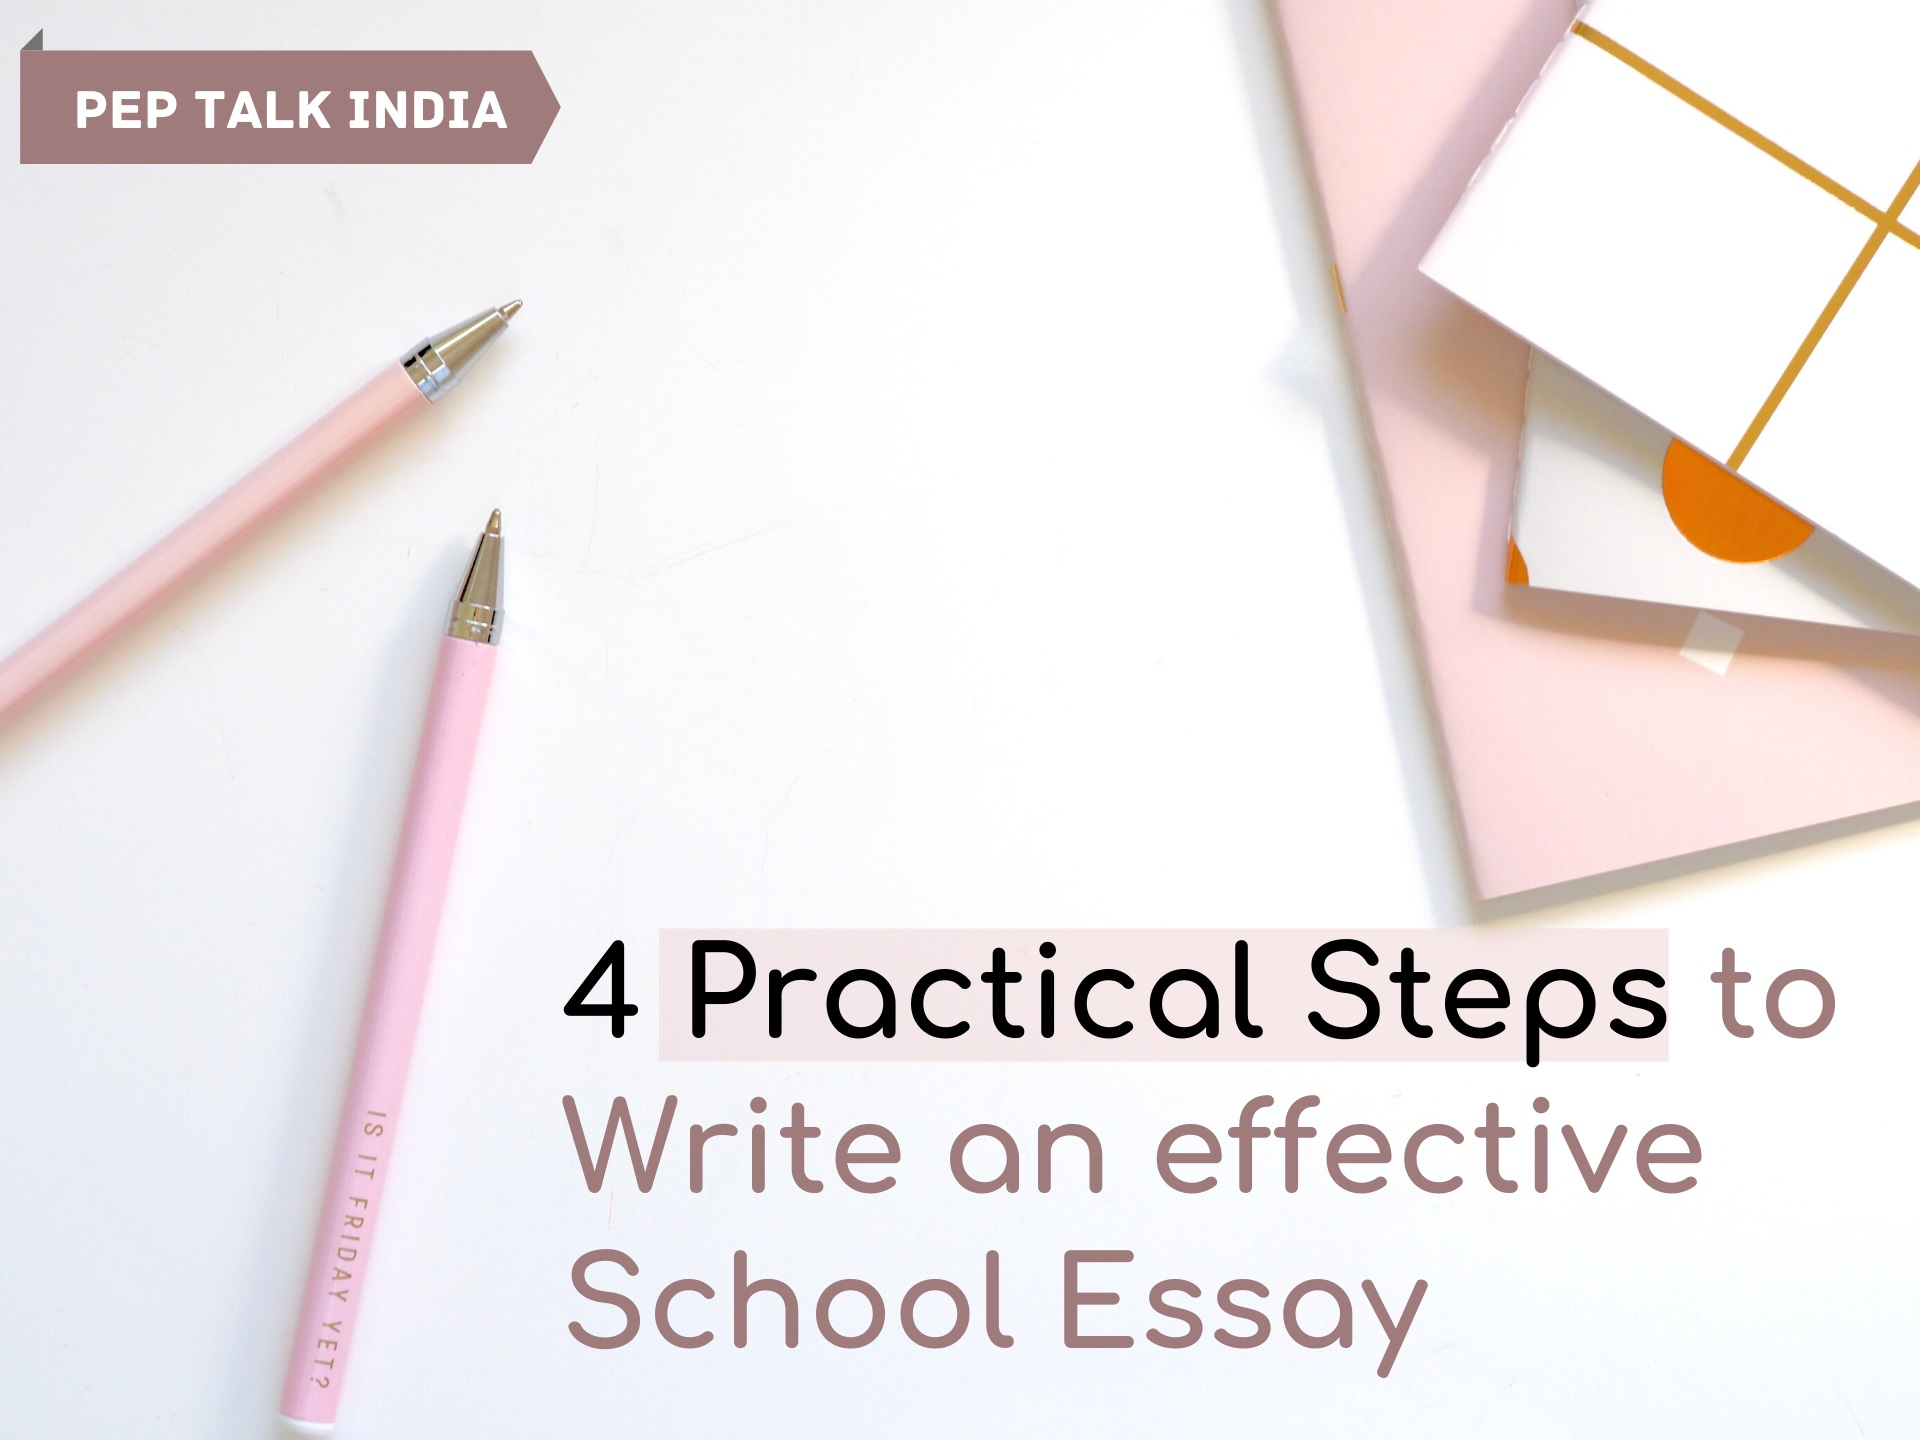 Practical steps to write school essay